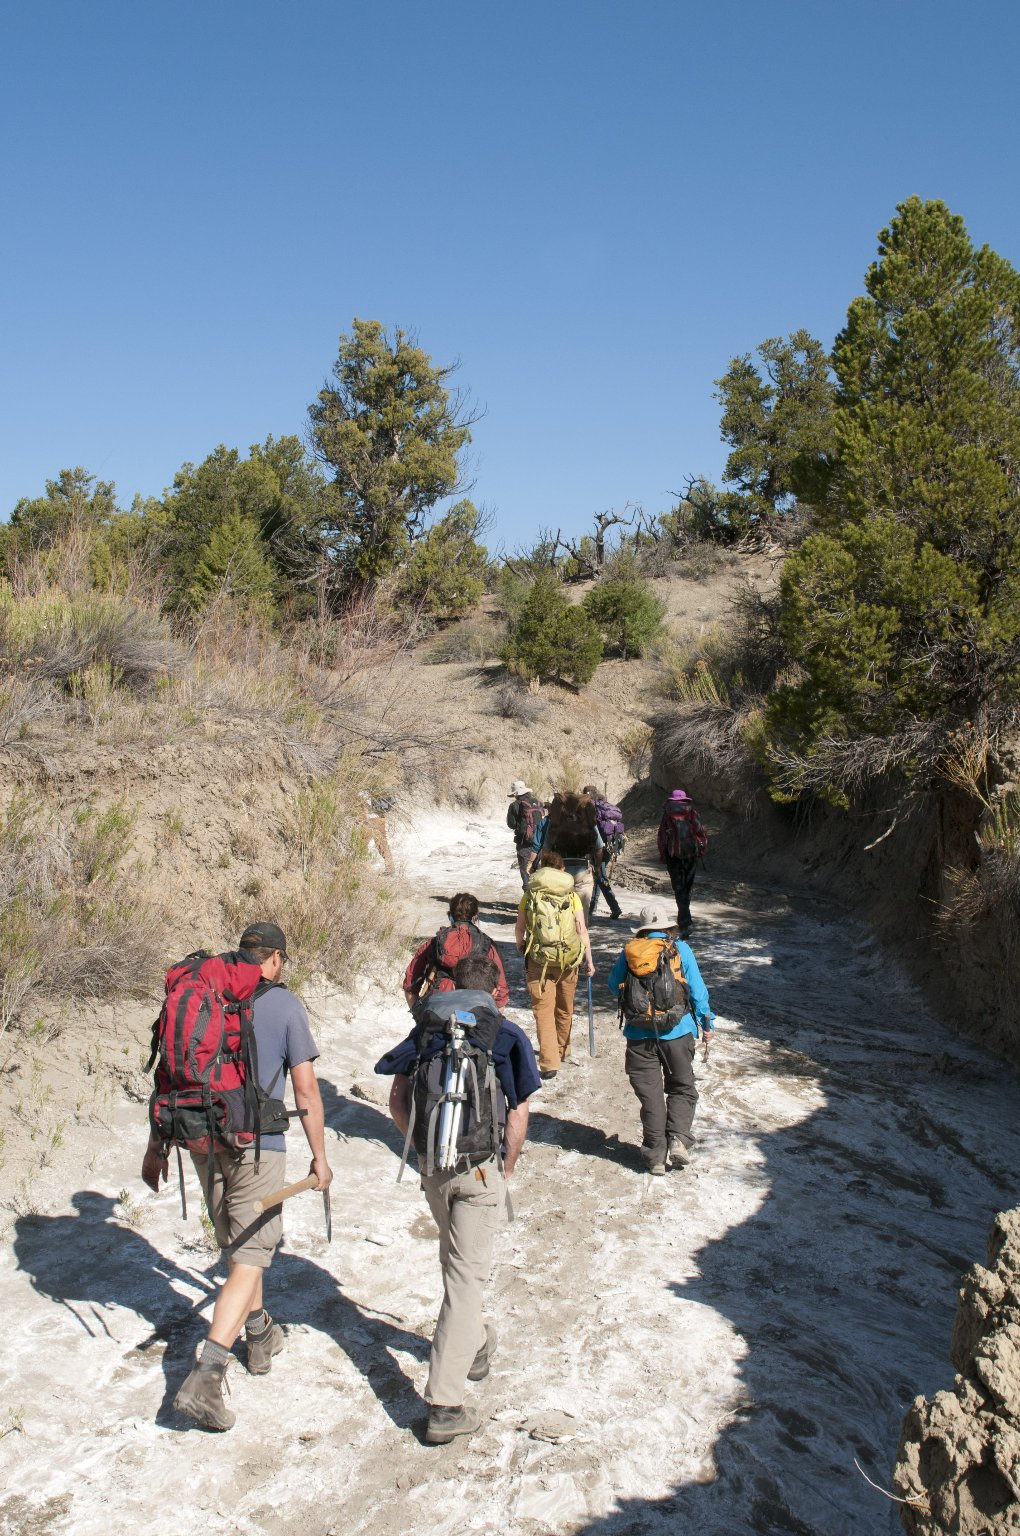 The DMNS group climbs a wash to get to their first dig site.